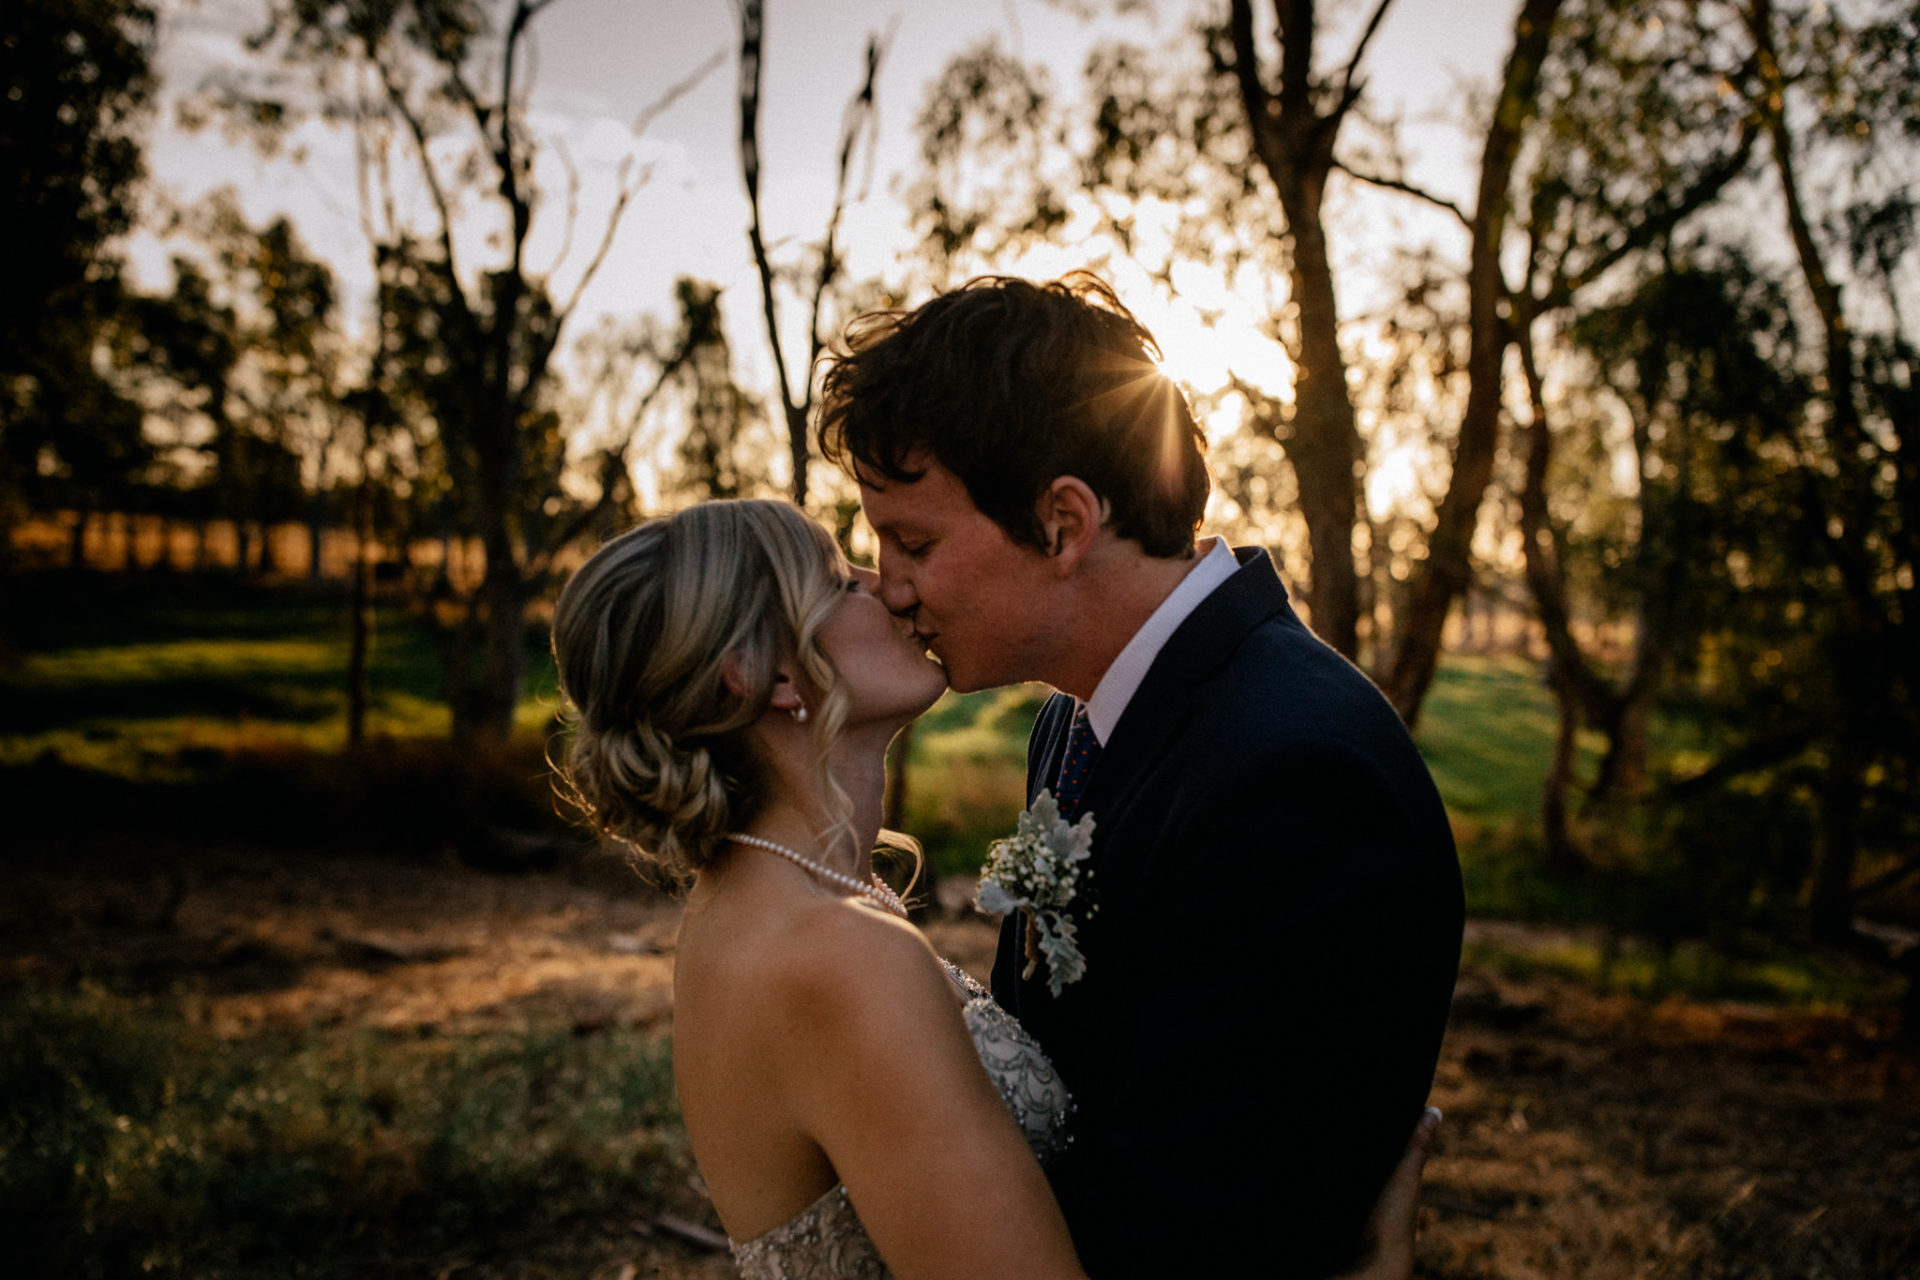 backyard-wedding-australia-melbourne-bride-groom-portrait-sunset